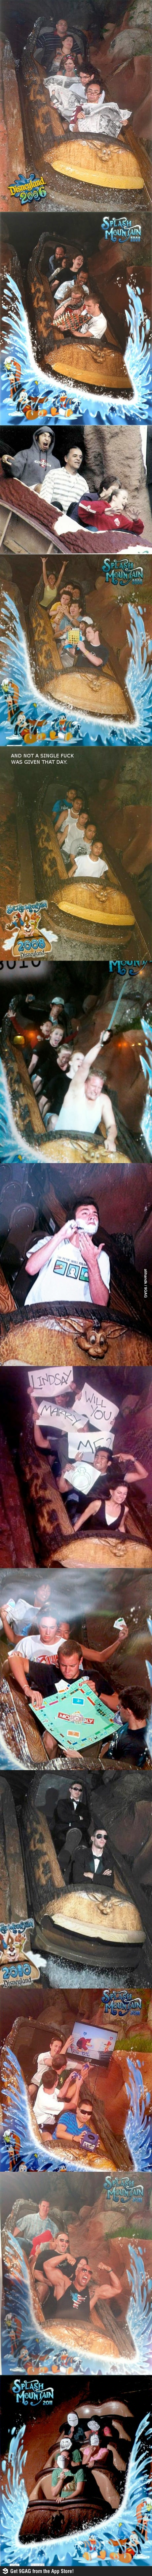 Best of Disney's Splash Mountain Photos